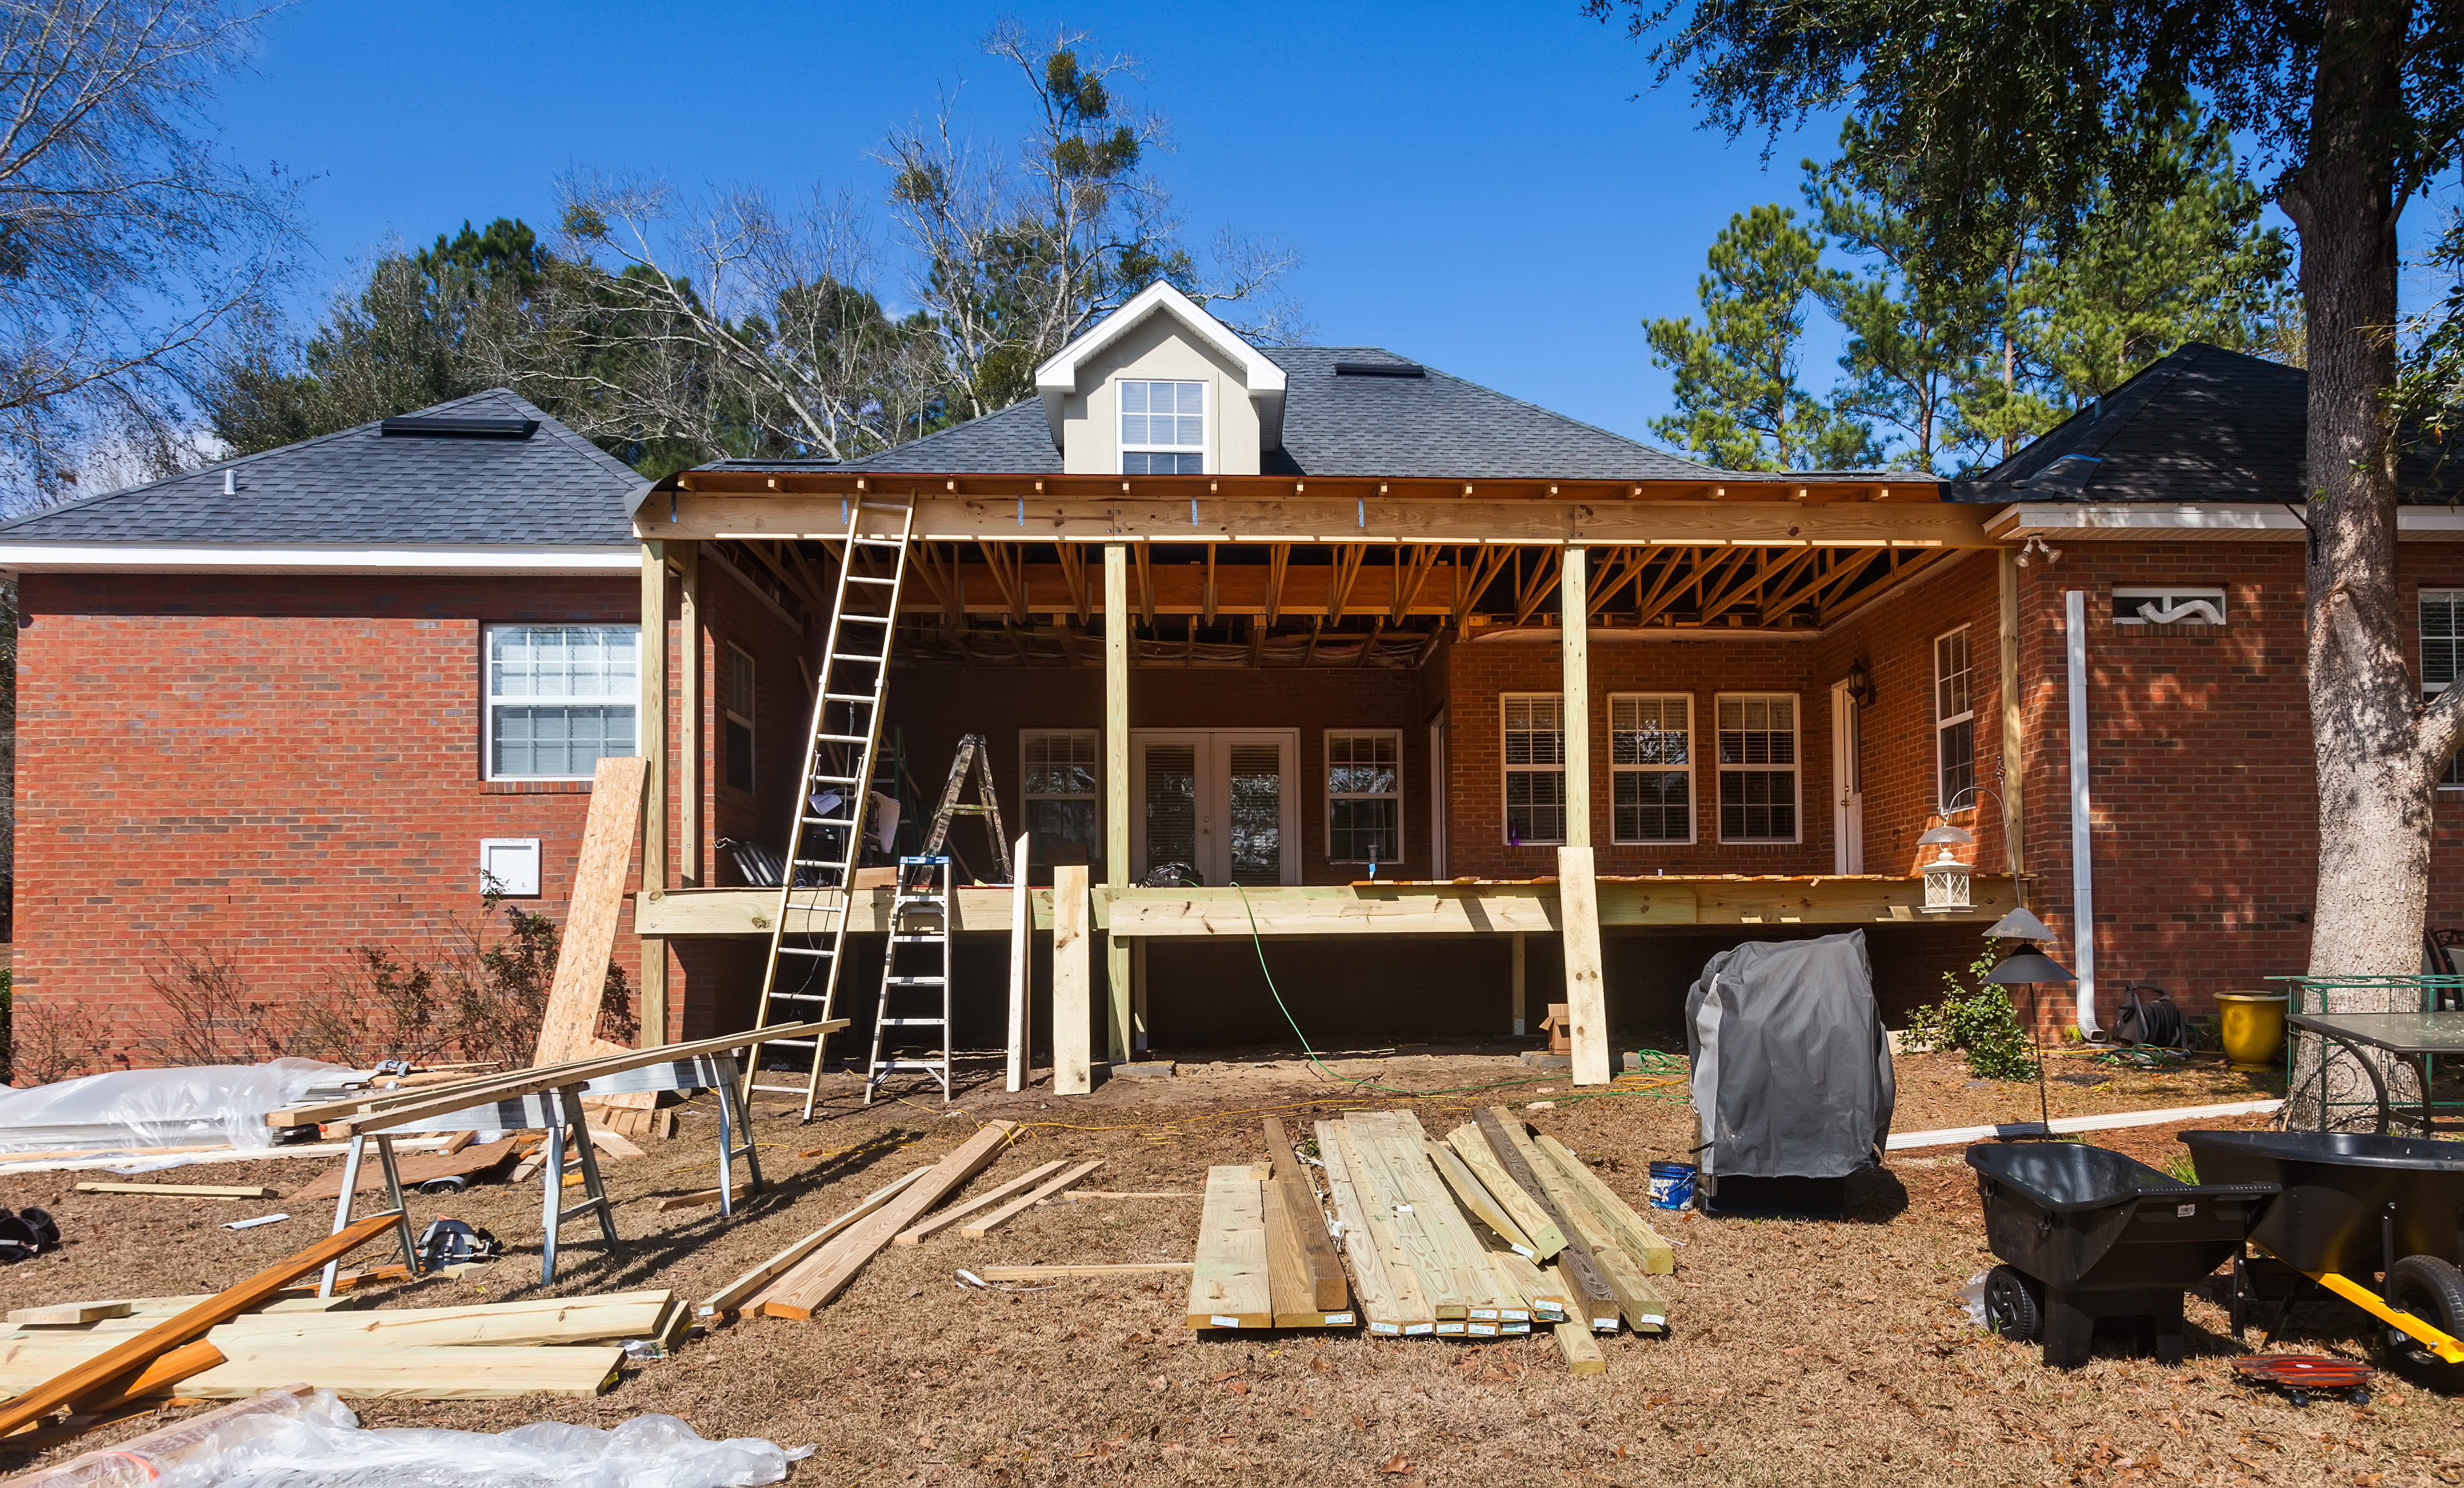 image google additions com addition room rickelectricalcontractors for result designs pin home